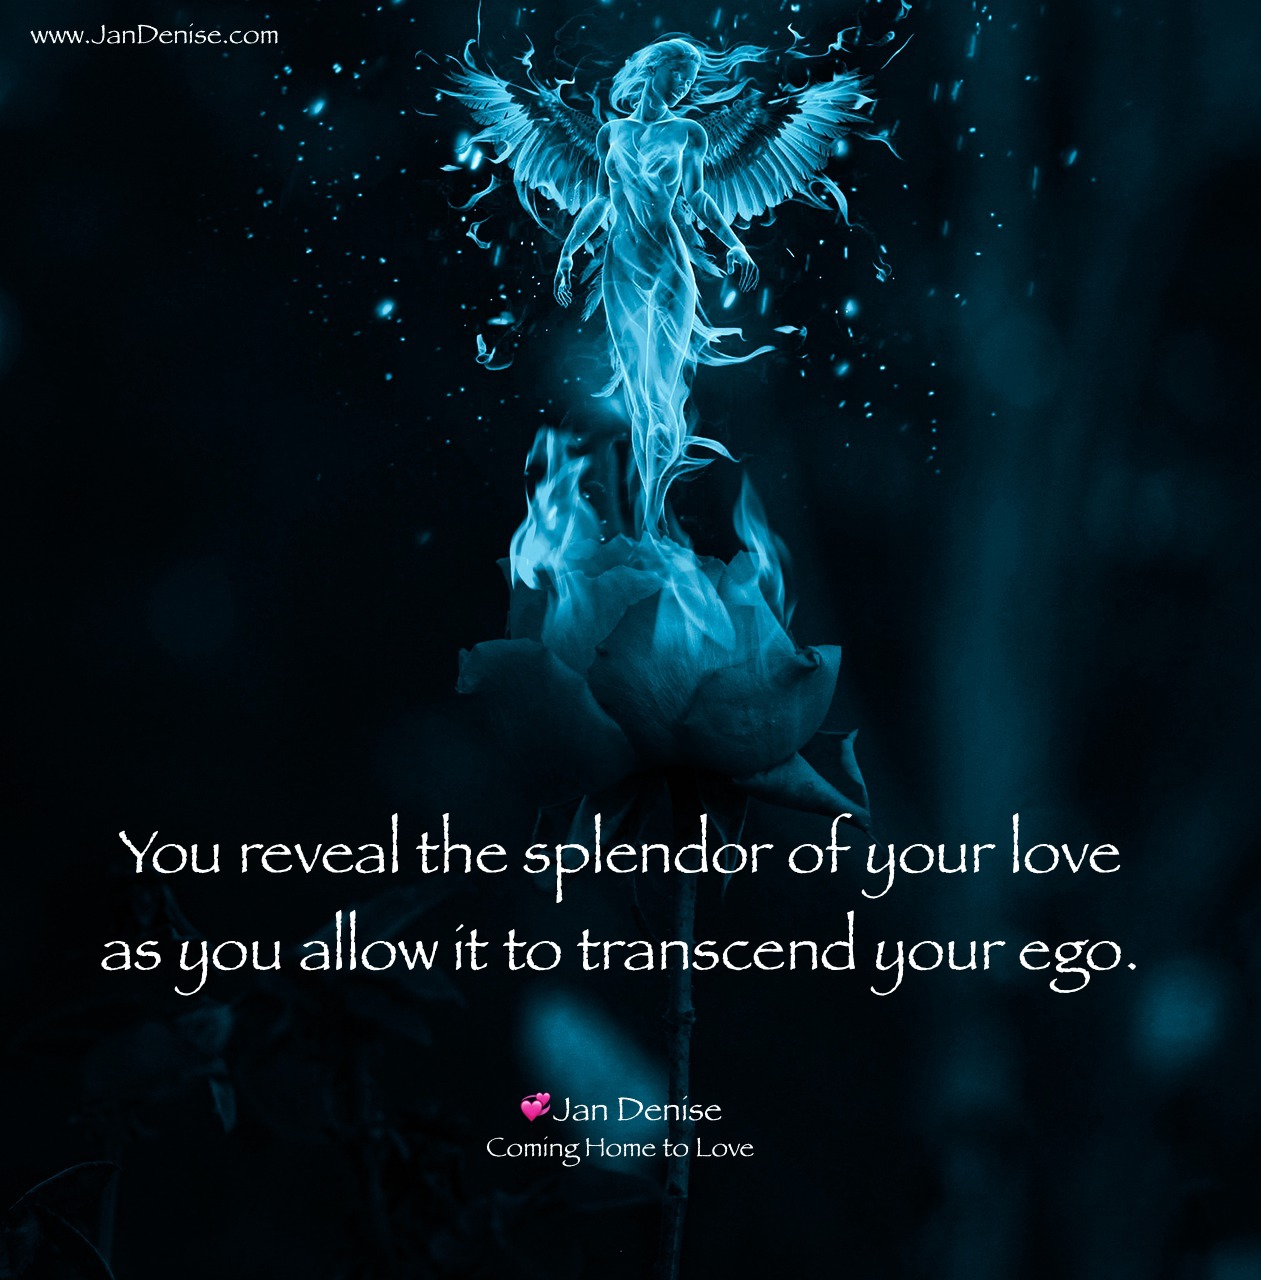 We can yield our ego to love …